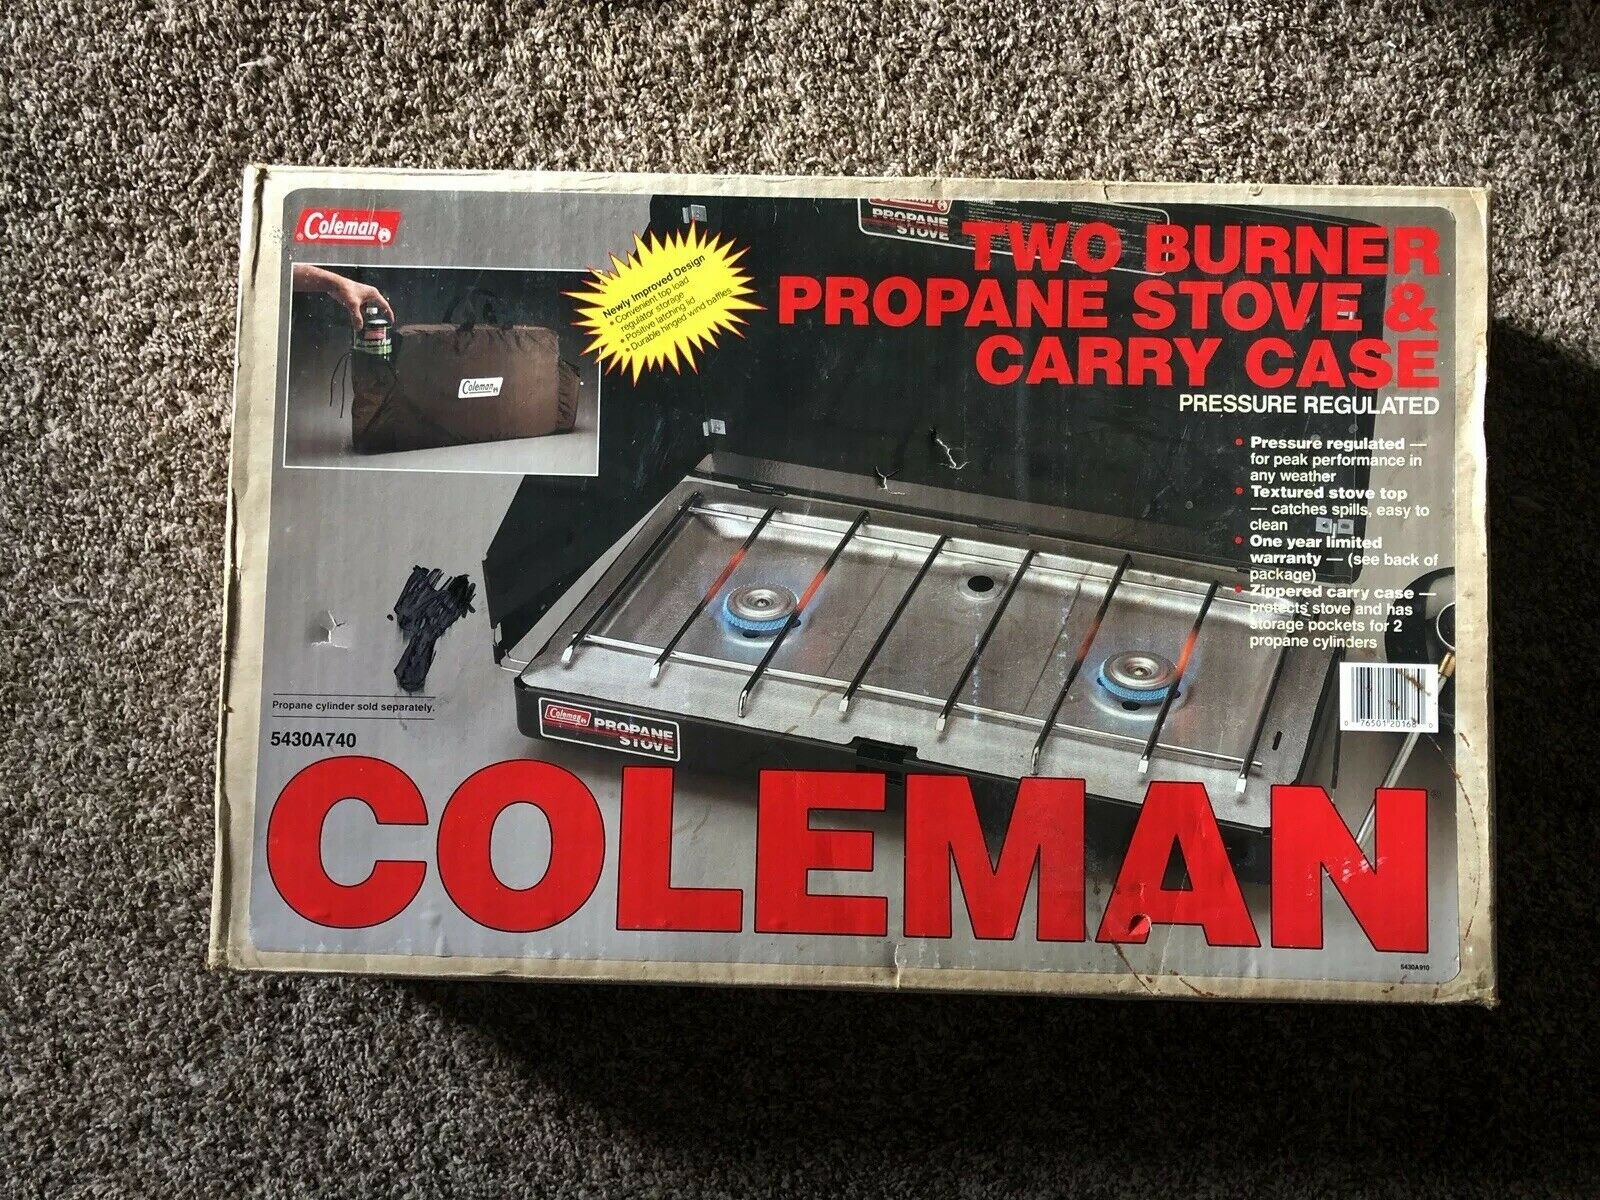 Vintage Coleman Two Burner Propane Stove &  Carry Case 5430A740 NIB  select from the newest brands like